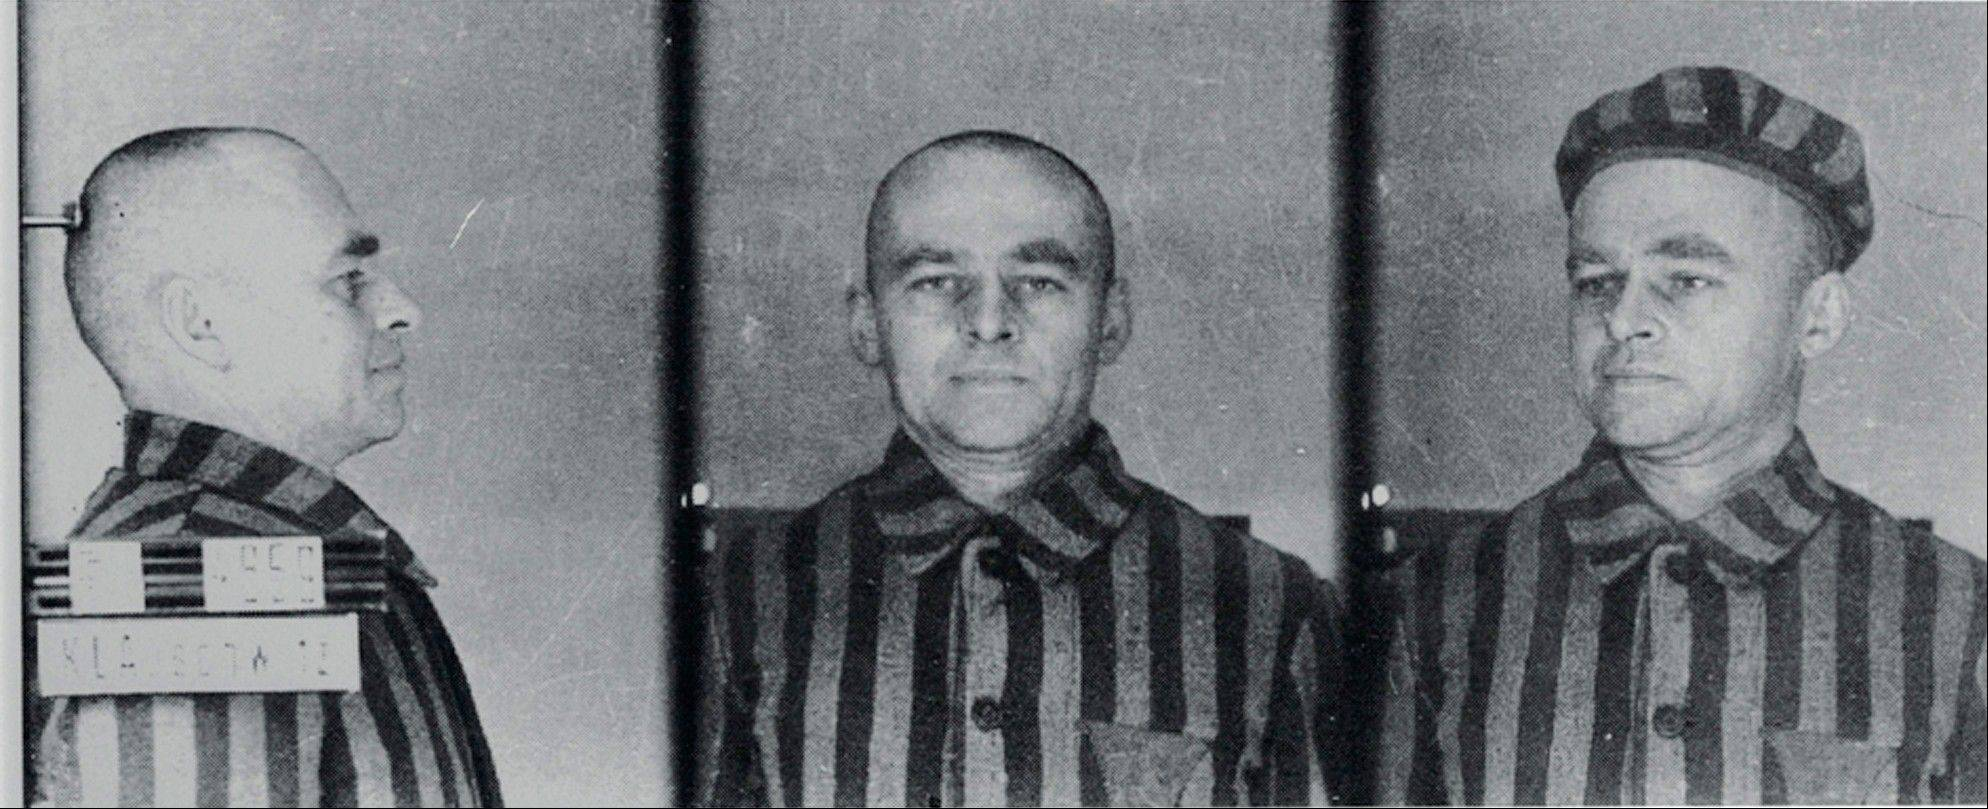 In this 1940 photo provided by the Institute of National Remembrance is seen Witold Pilecki as an inmate of the Auschwitz Birkenau death camp.